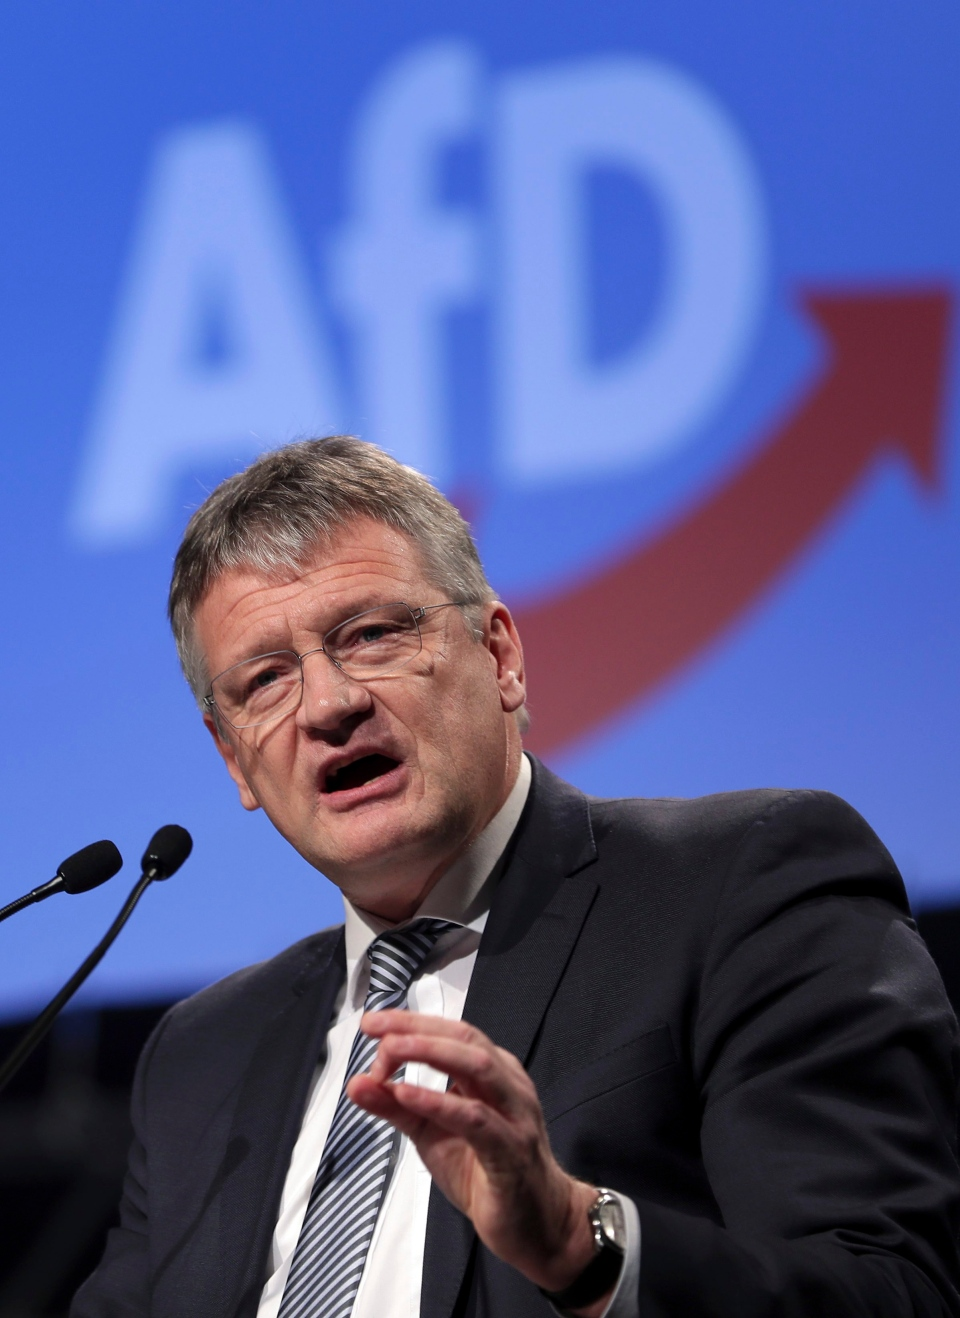 The party's chairman Joerg Meuthen delivers a speech during a party convention of the Alternative for Germany, AfD, party in Hanover, Germany, Saturday, Dec. 2, 2017. (AP / Michael Sohn)